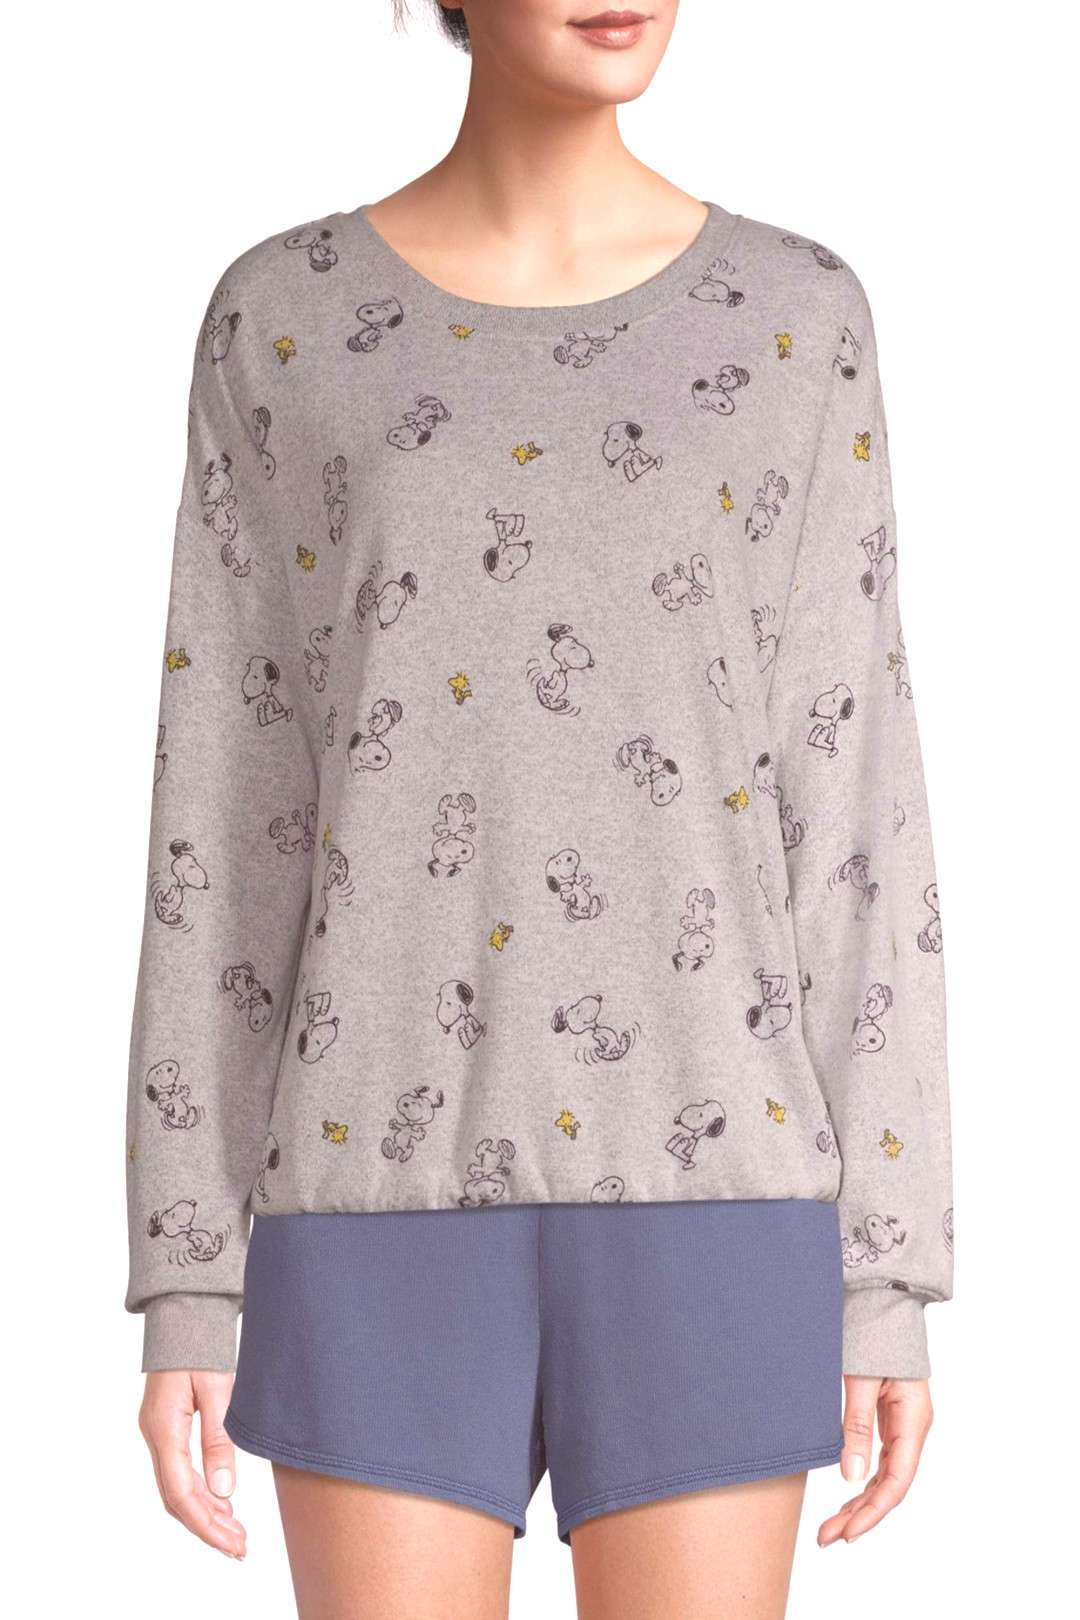 Peanuts Women?s and Women?s Plus Long Sleeve Sleep Top.